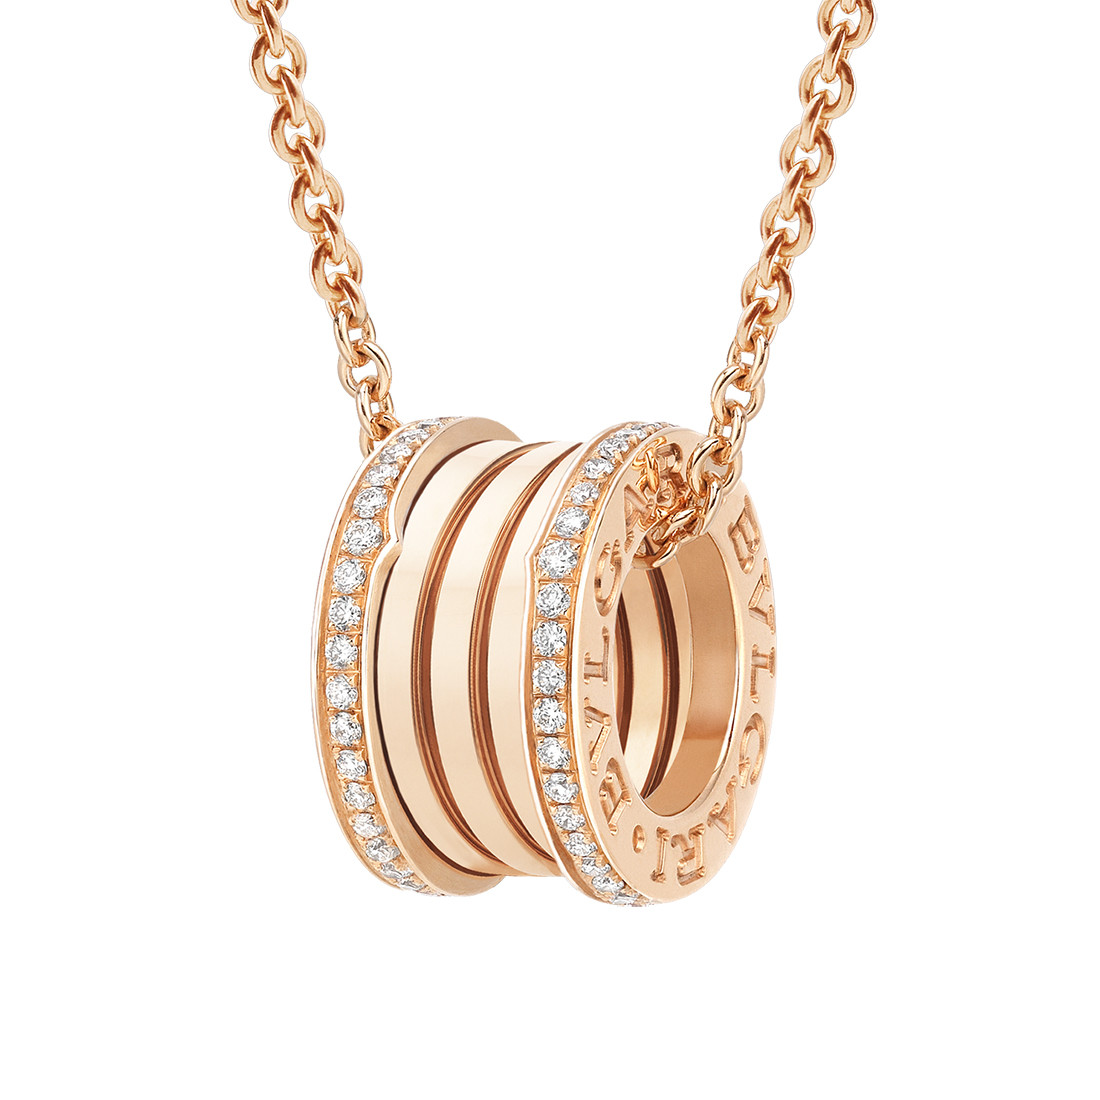 Bulgari necklaces pendants betteridge 18k pink gold diamond bzero1 pendant necklace mozeypictures Image collections